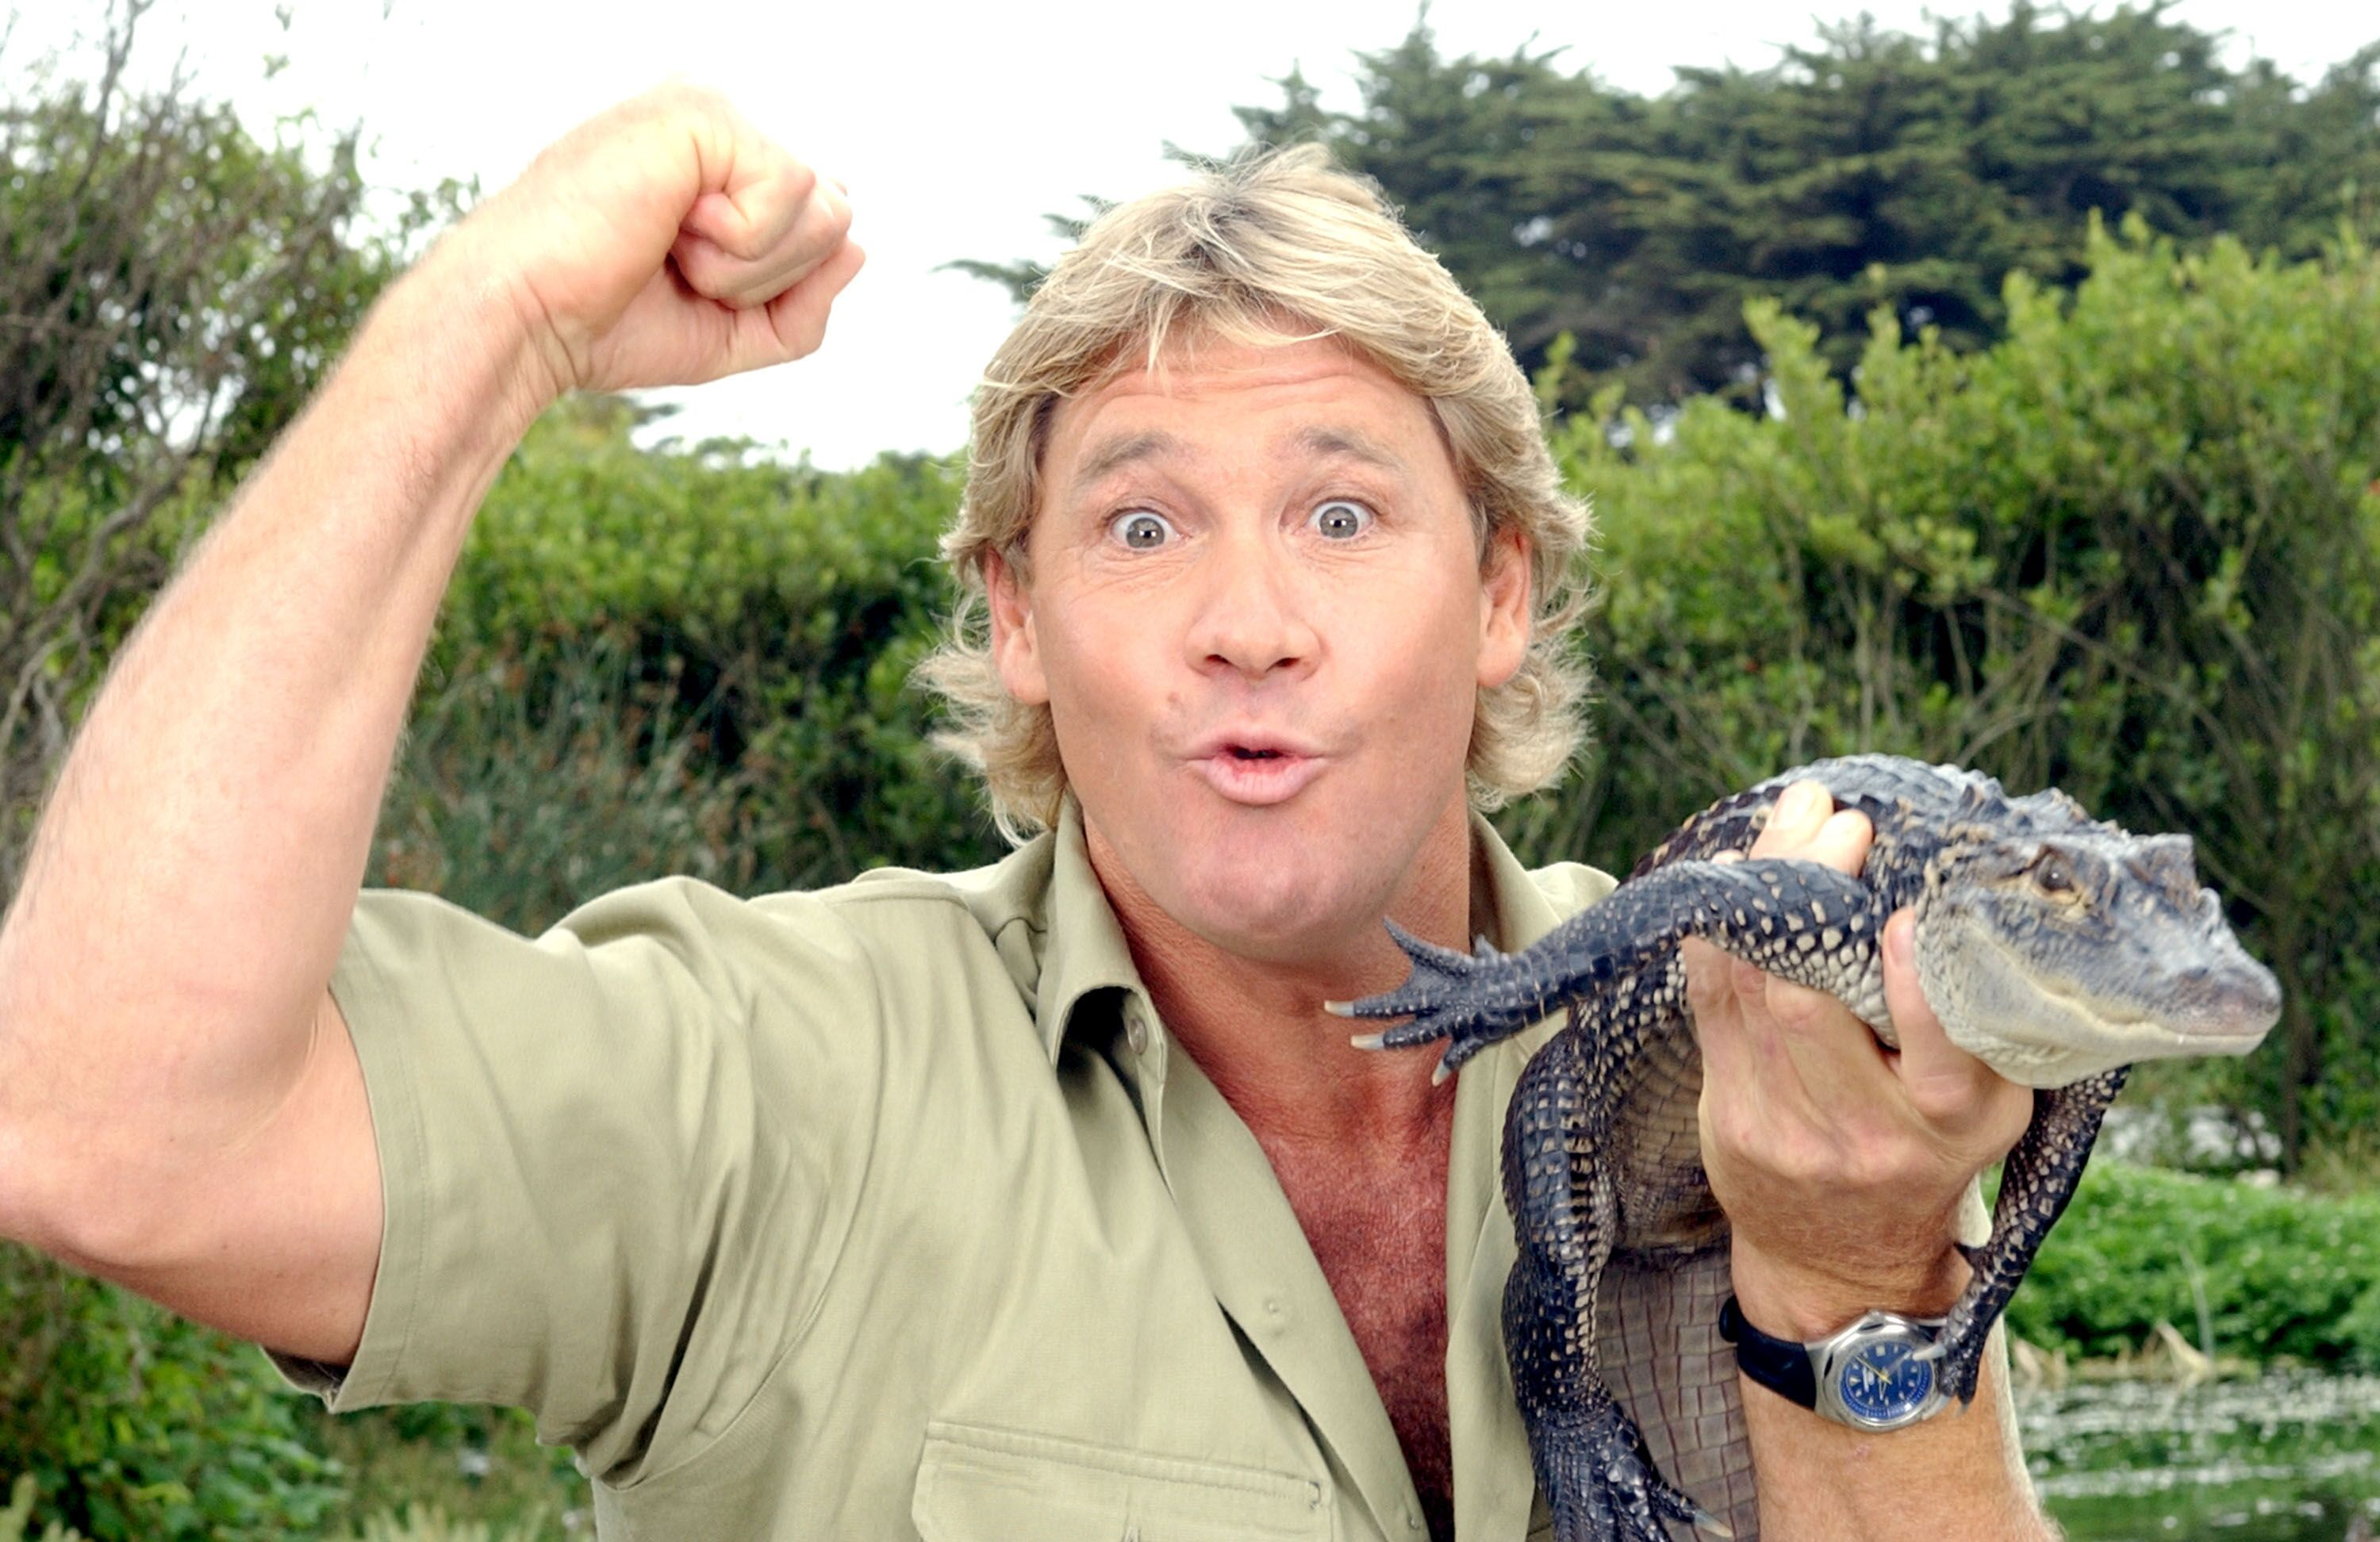 Steve Irwin, poses with a three foot long alligator at the San Francisco Zoo on June 26, 2002 in San Francisco, California | Photo: Getty Images